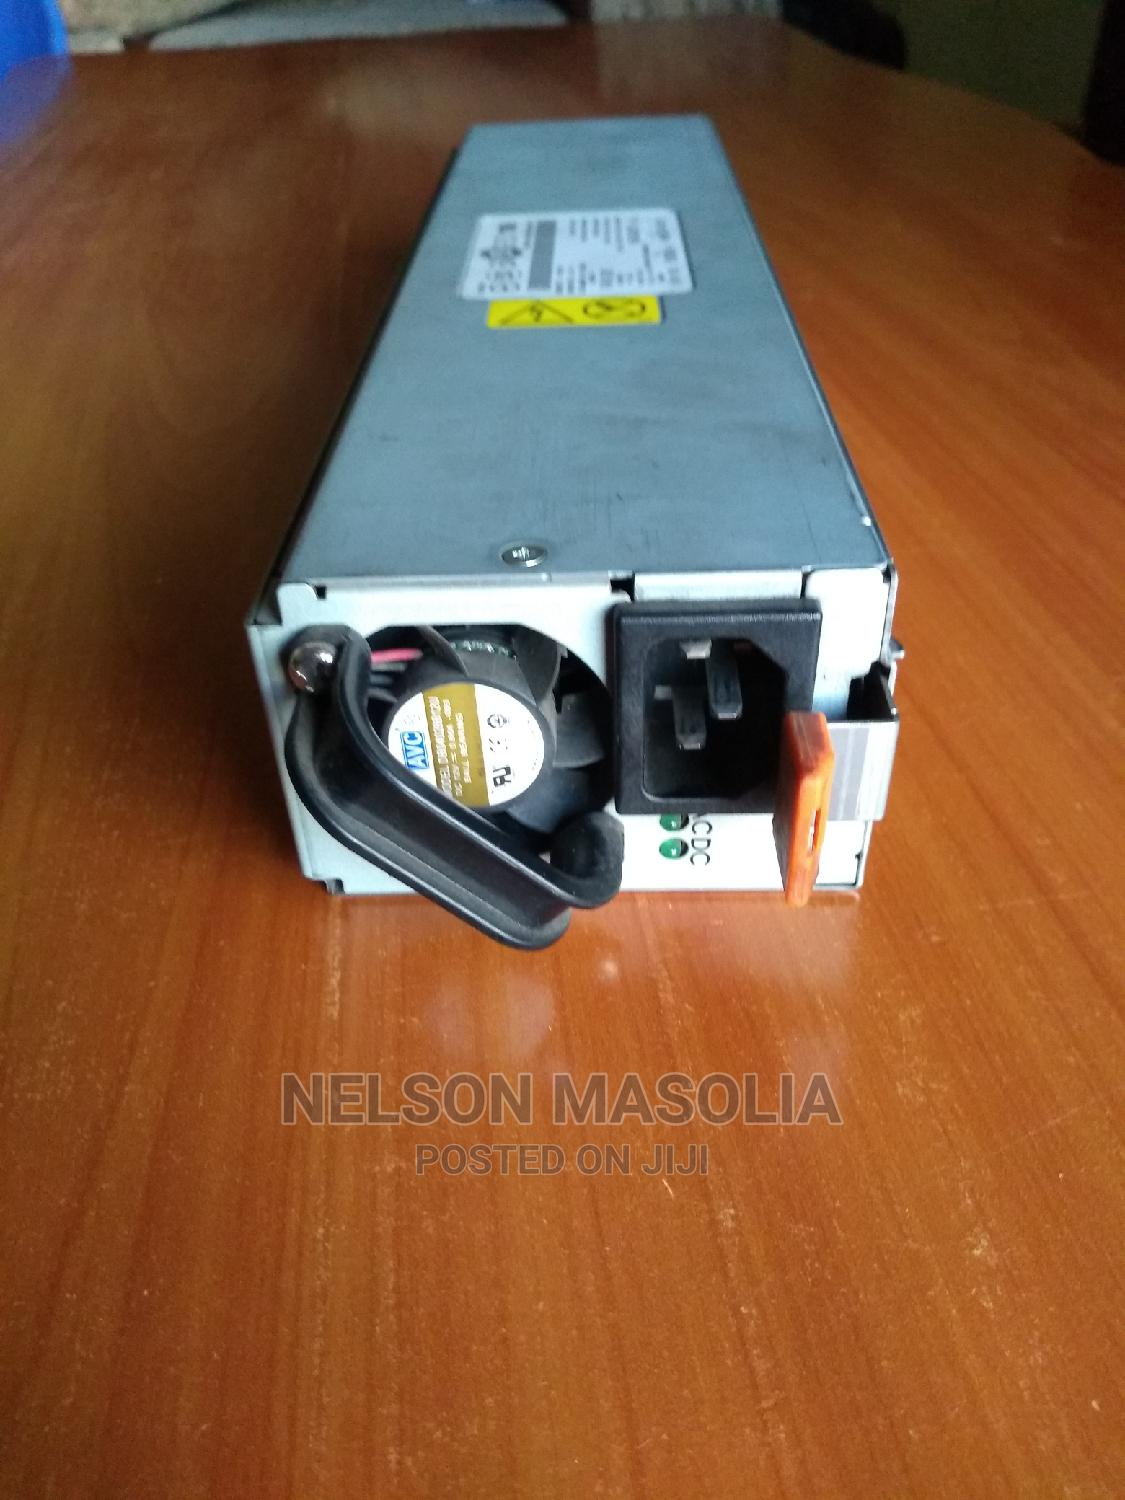 Power Supply For Car Amp In House : power, supply, house, Booster, Power, Supply, Githurai, Accessories, Supplies, Electronics,, Nelson, Masolia, Jiji.co.ke